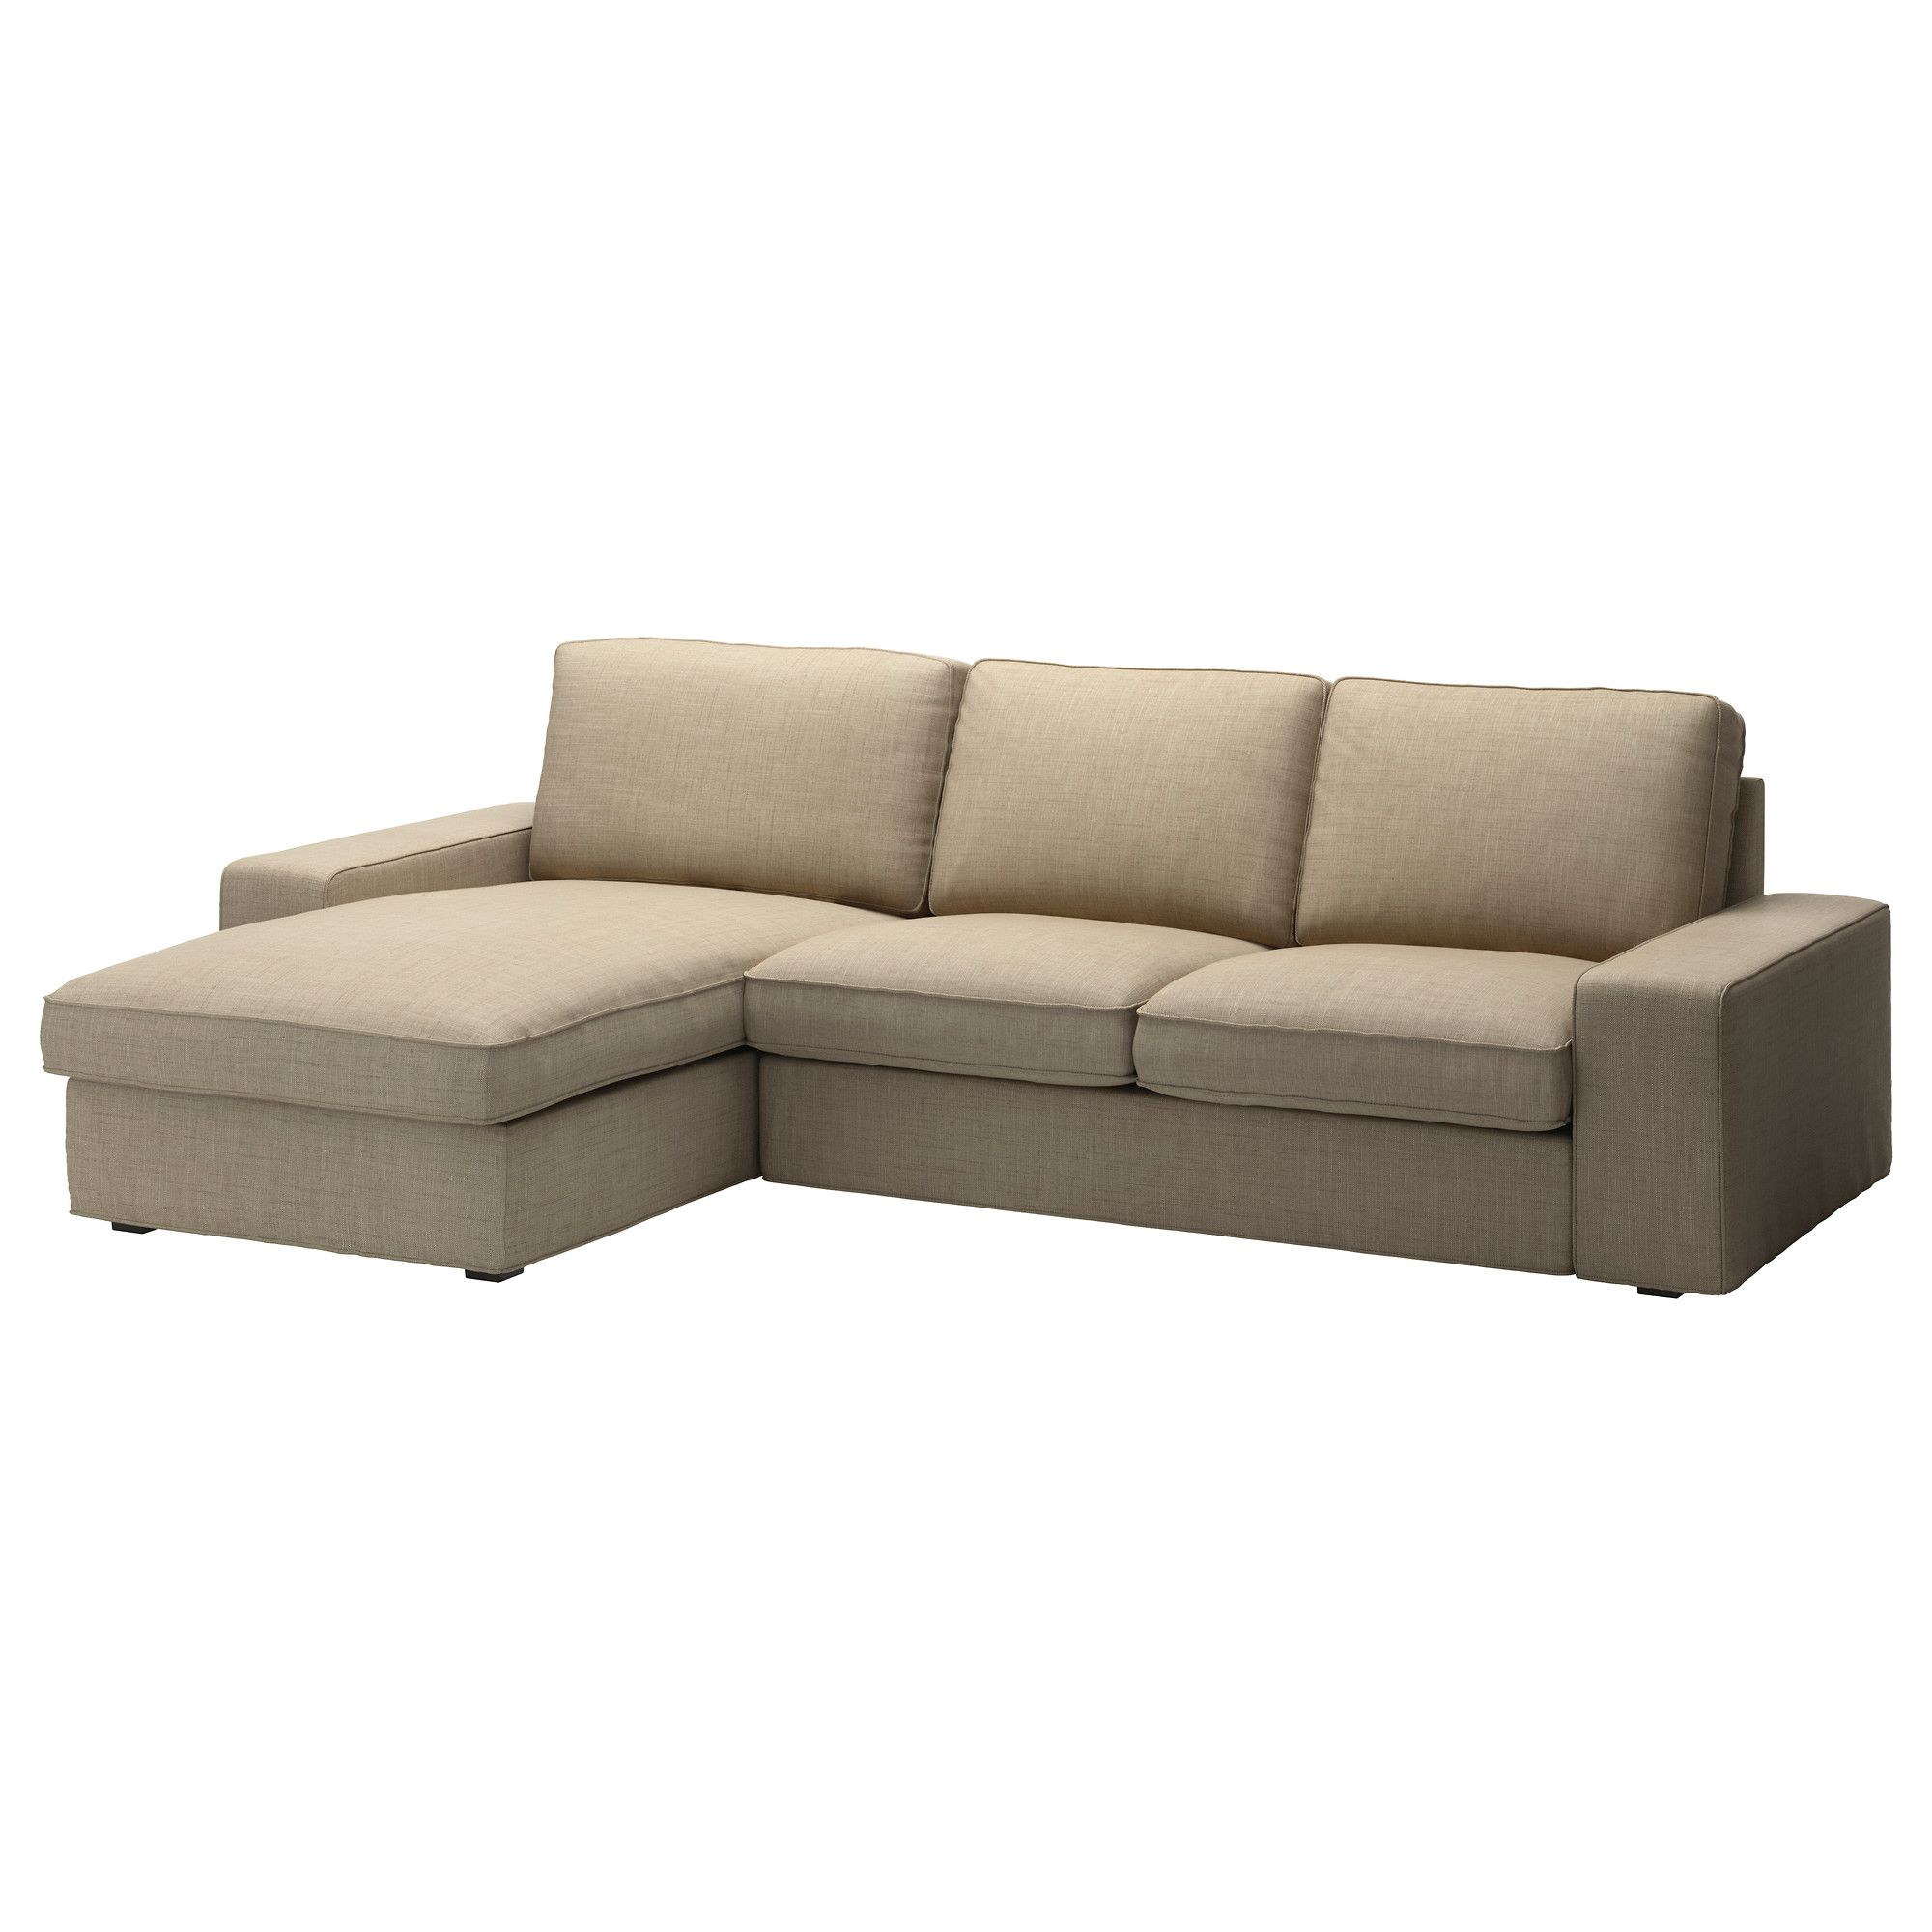 kivik sofa chaise which is posher couch or loveseat and lounge isunda beige ikea